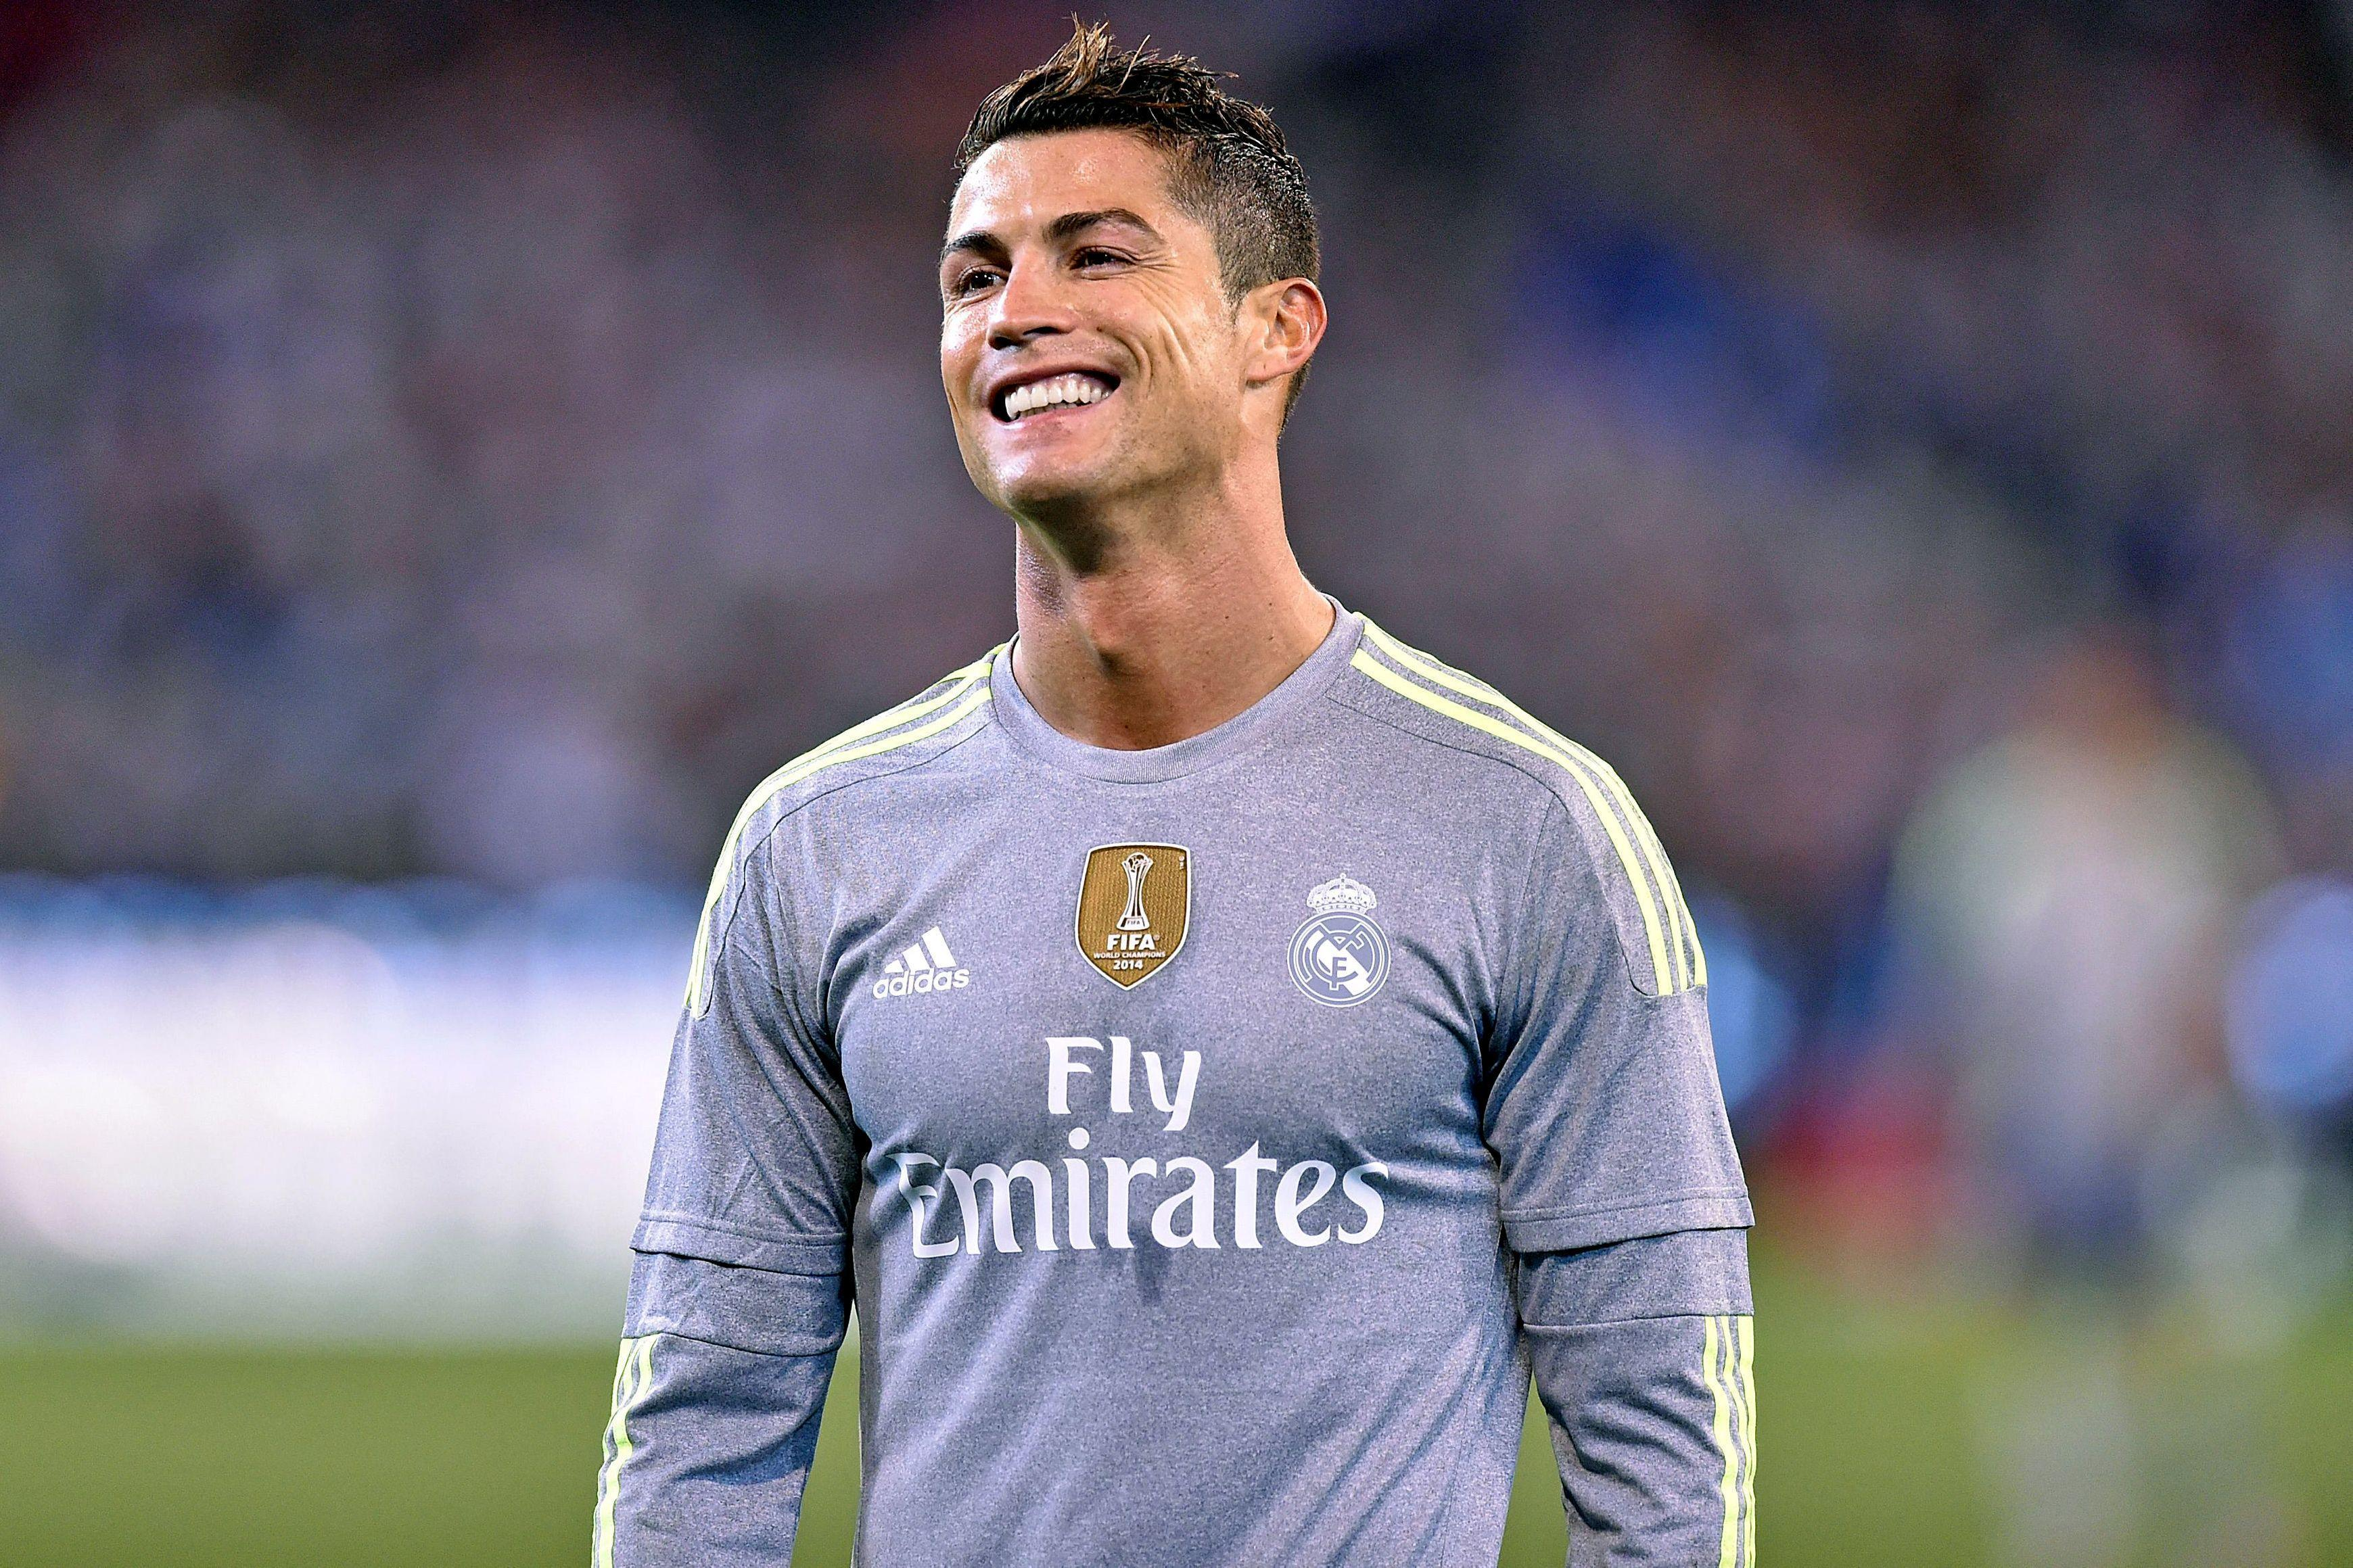 Cristiano Ronaldo Hd Wallpapers Top Free Cristiano Ronaldo